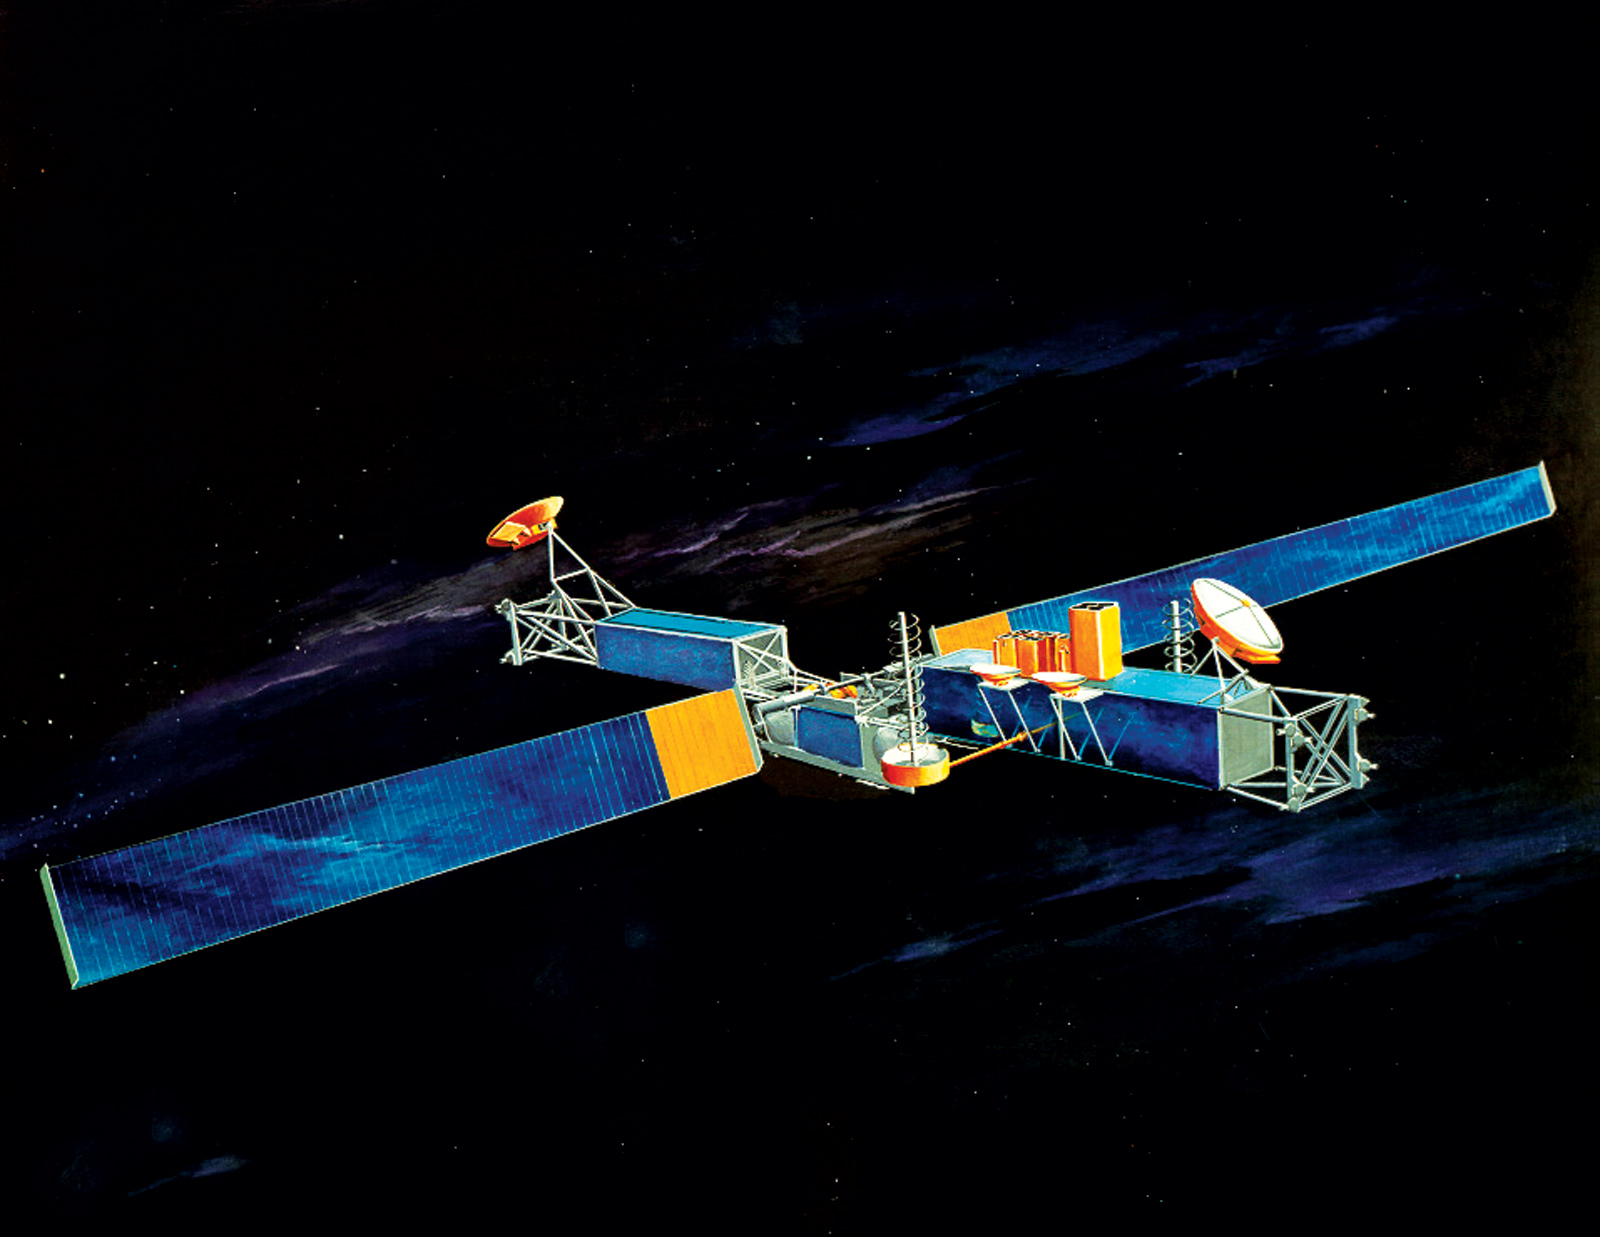 Illustration du satellite de communication Milstar